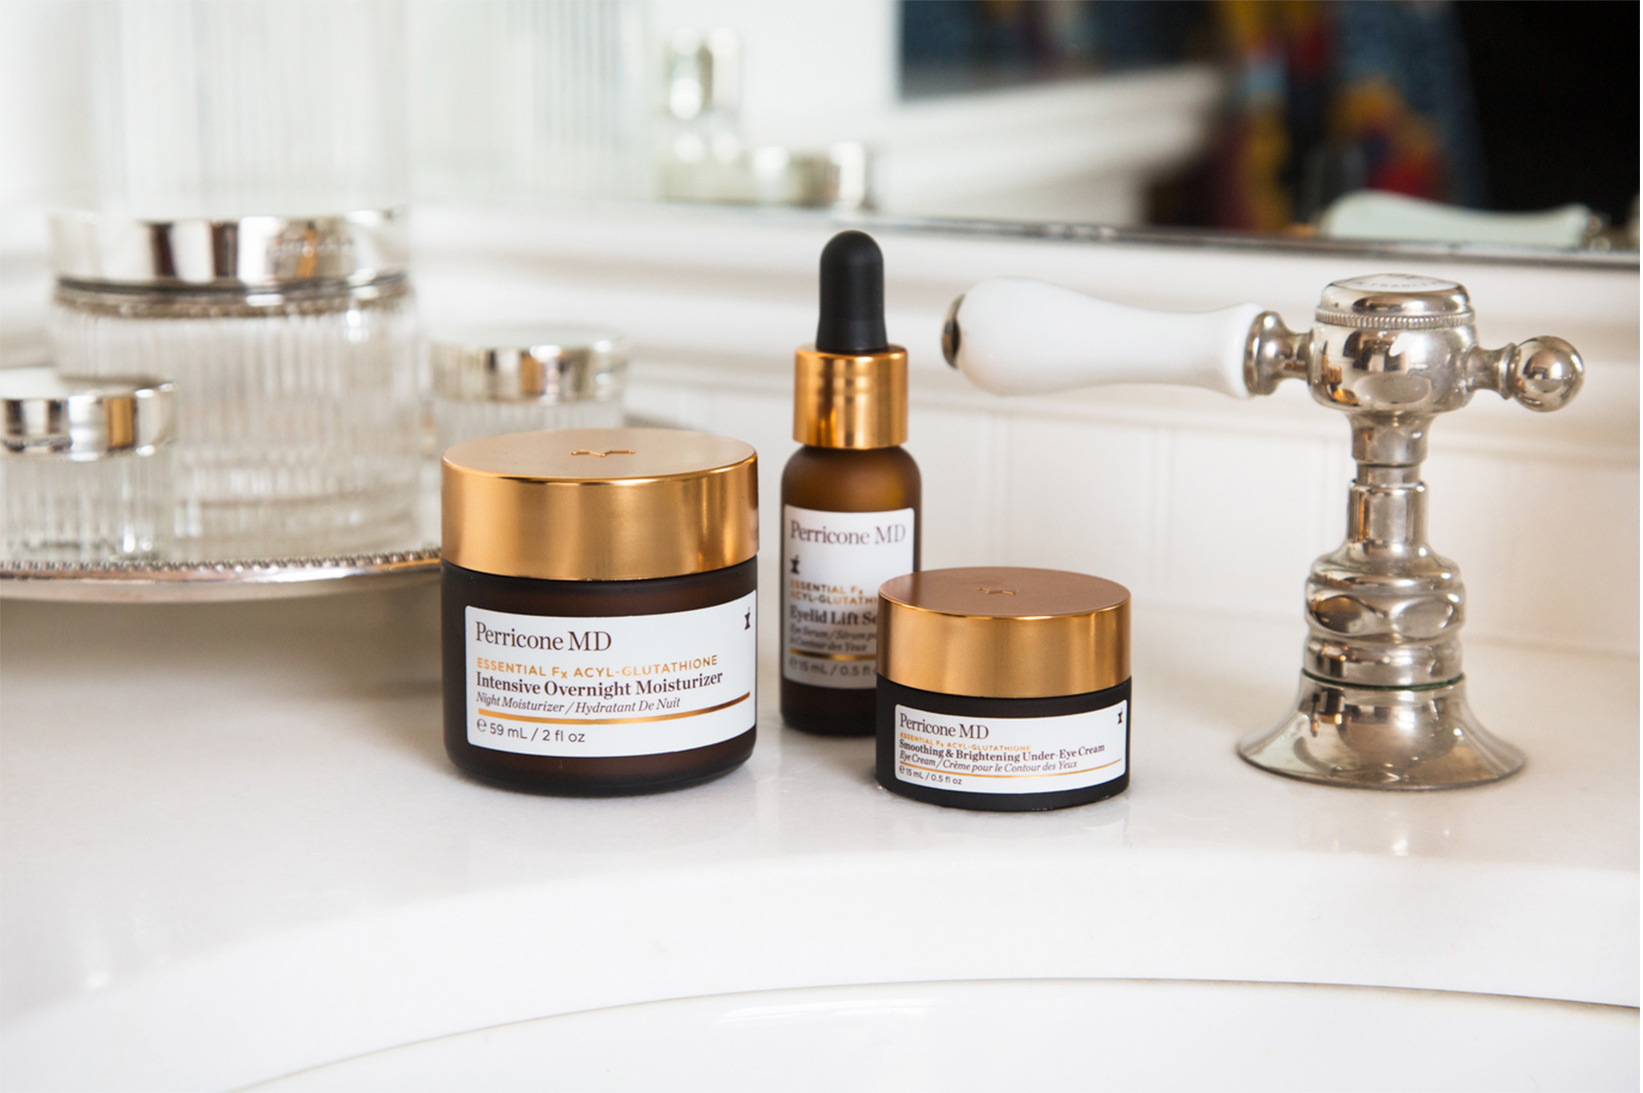 Perricone MD products on counter